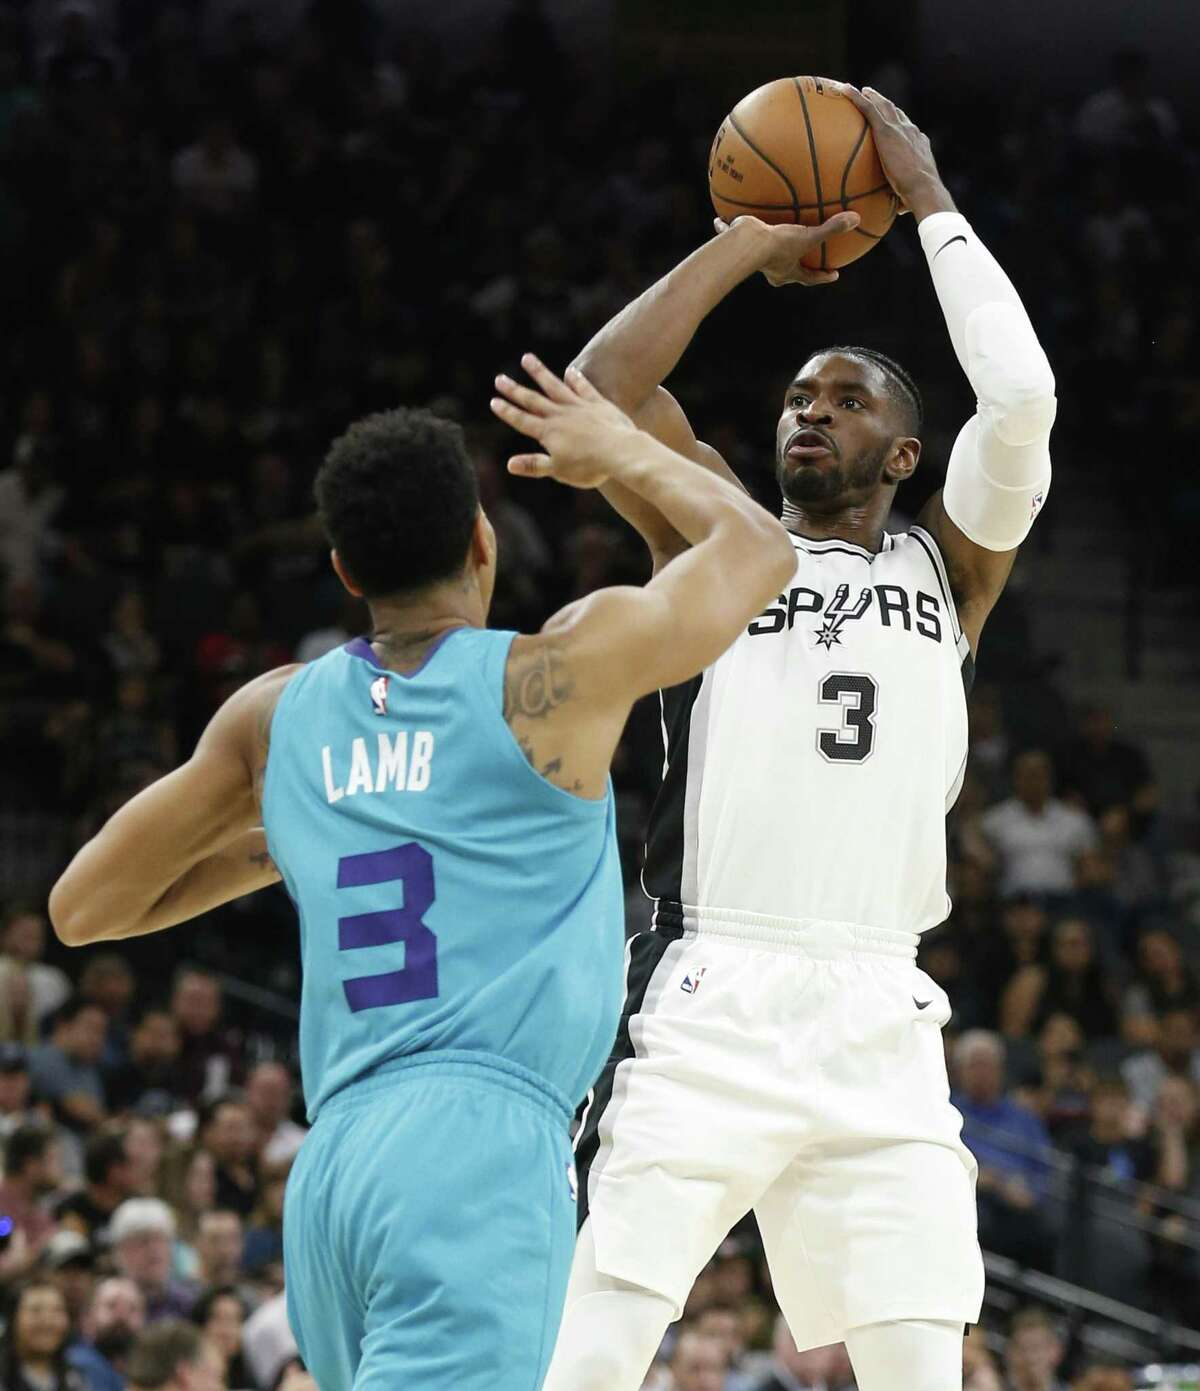 Spurs' Brandon Paul (03) attempts a shot against Charlotte Hornets' Jeremy Lamb (left) at the AT&T Center on Friday, Nov. 3, 2017. (Kin Man Hui/San Antonio Express-News)